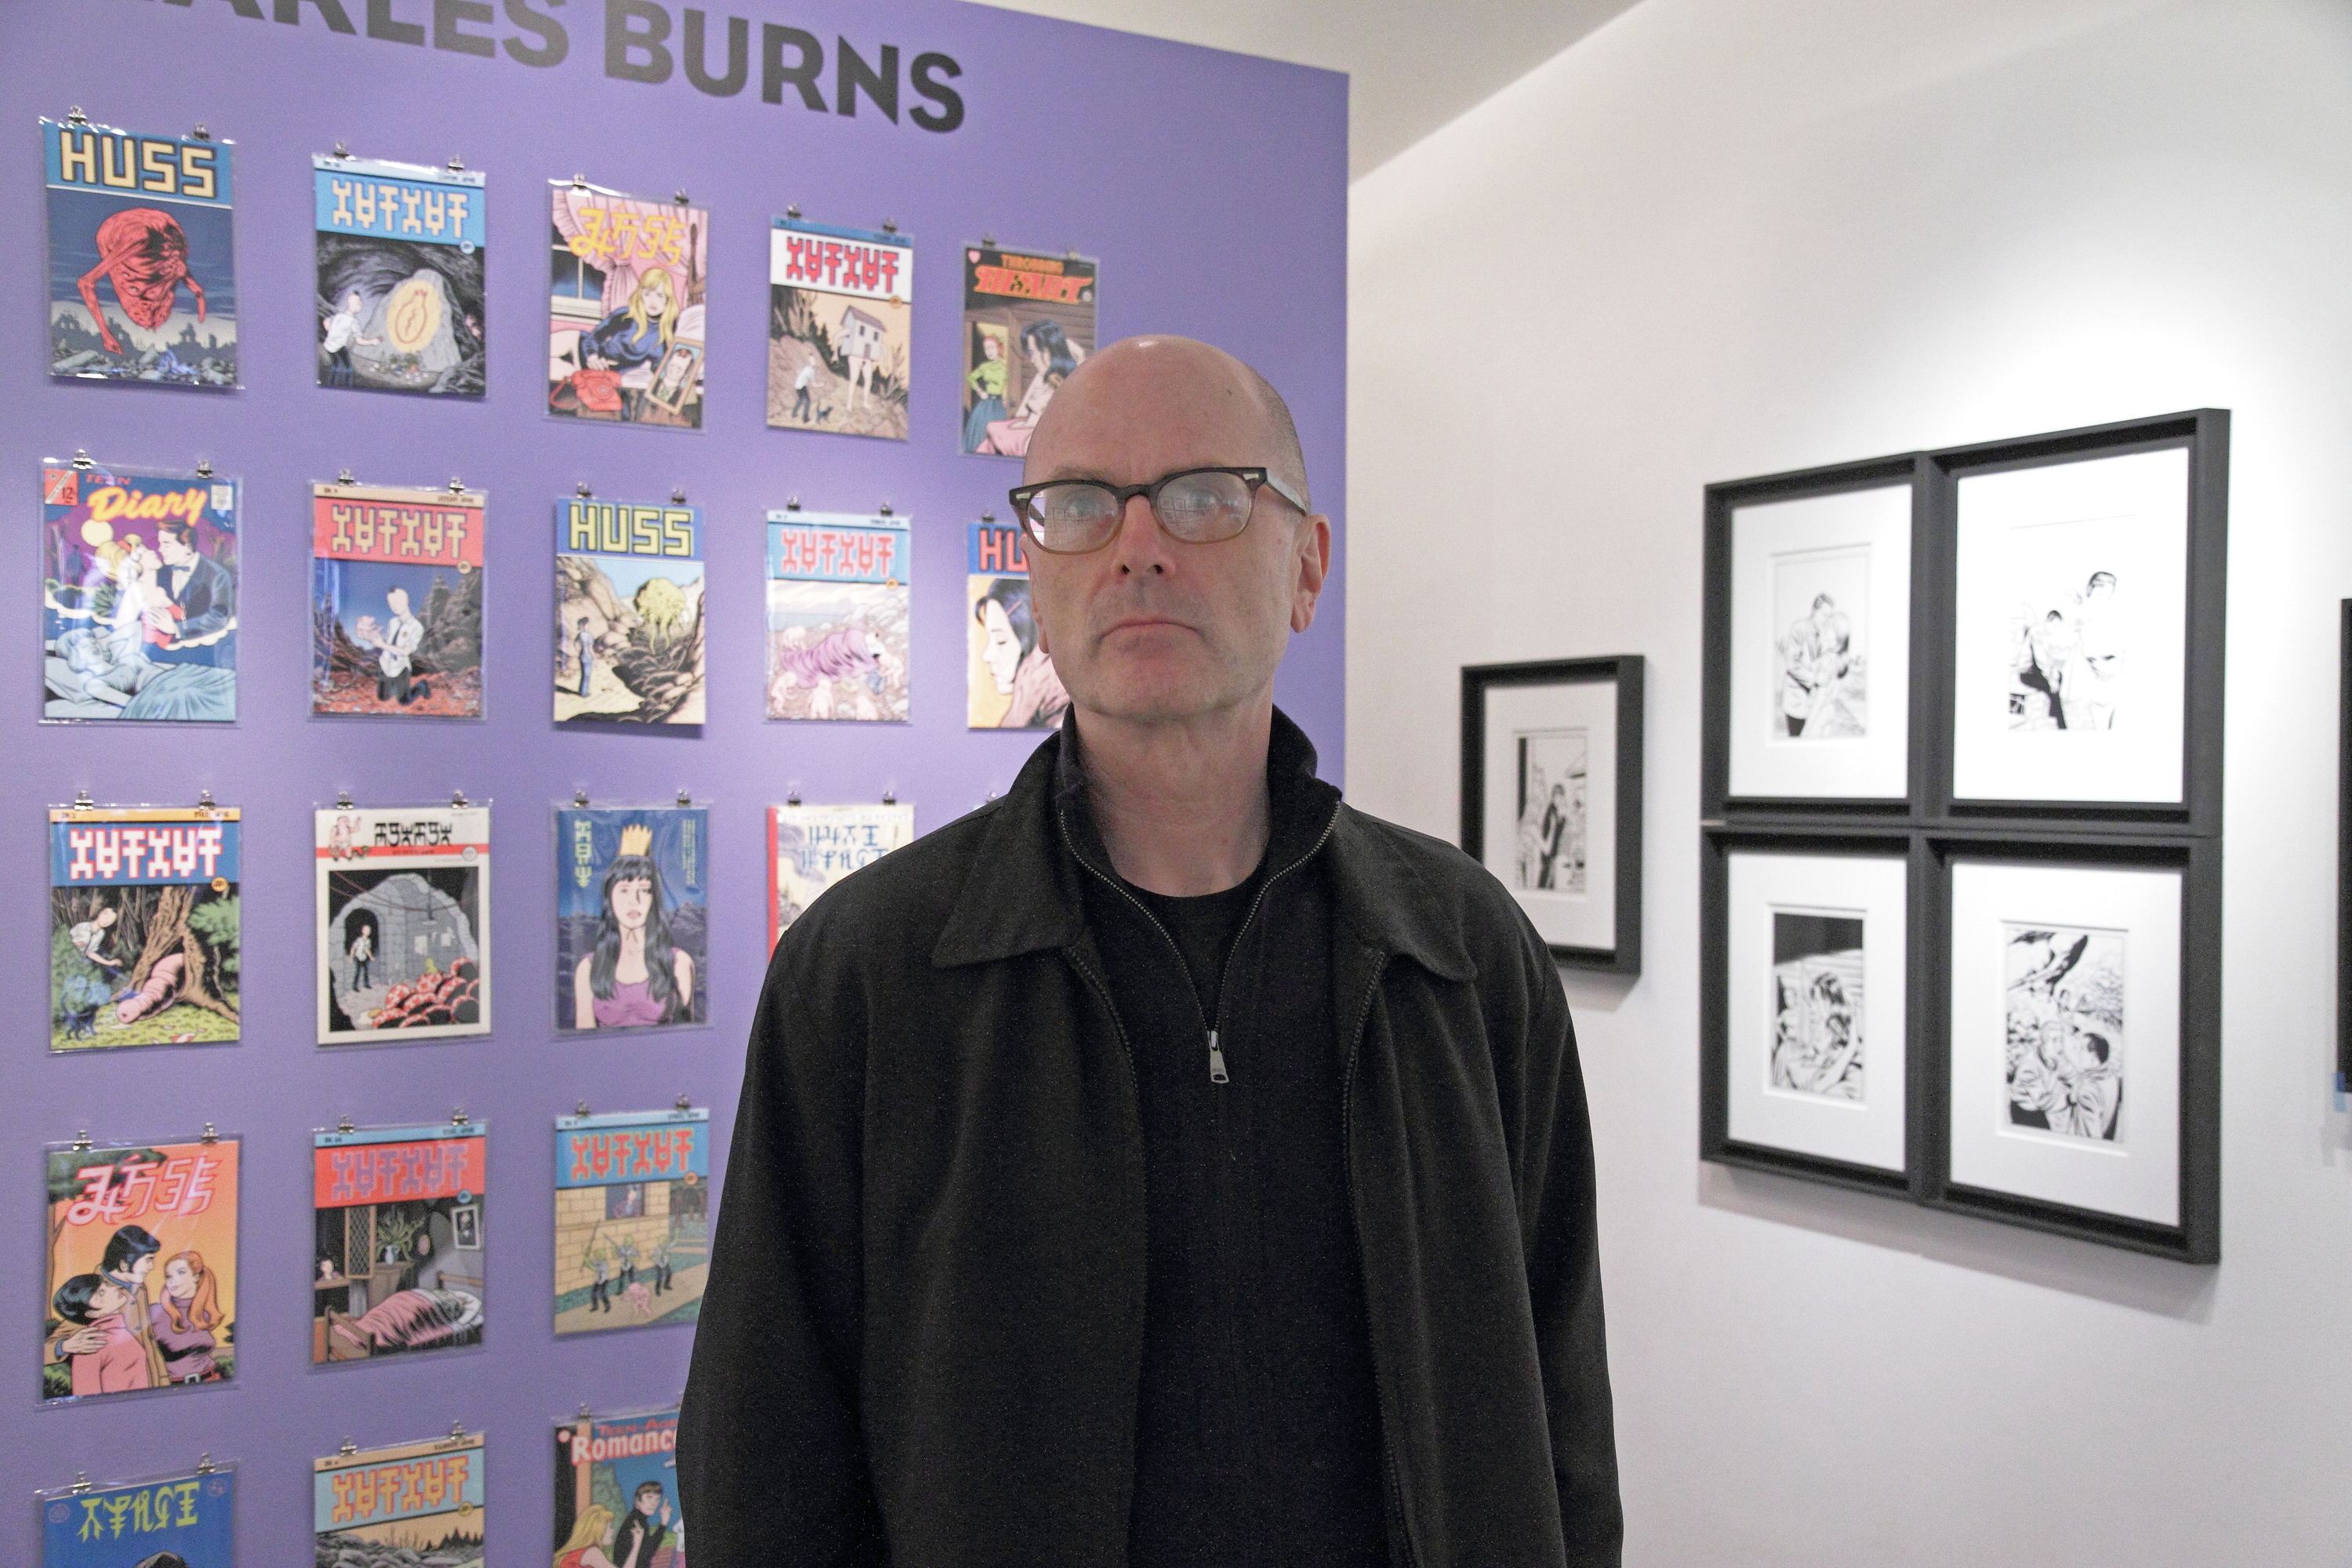 Charles Burns BD expo bande dessinée exposition